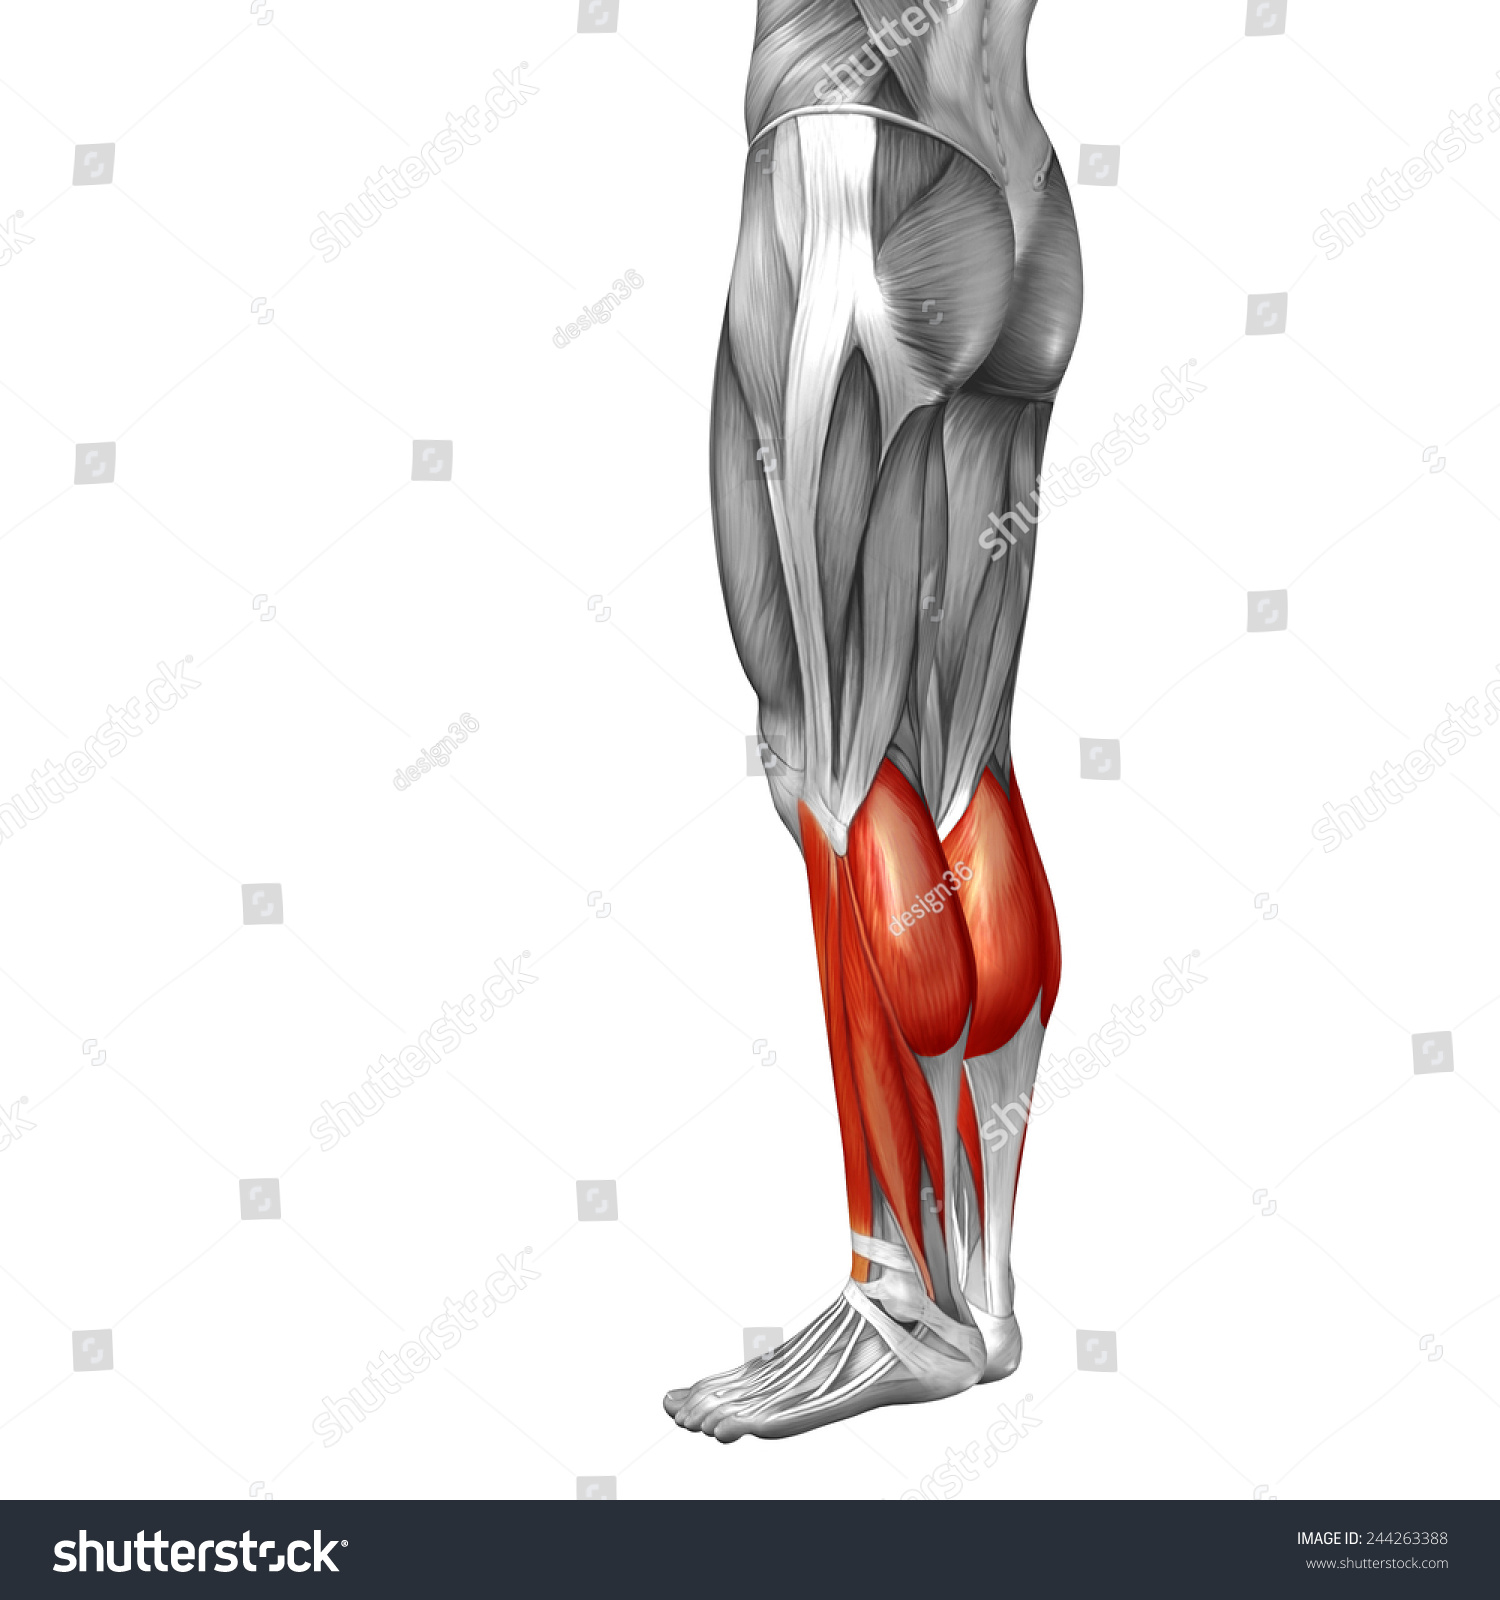 Concept Conceptual 3 D Back Lower Leg Stock Illustration 244263388